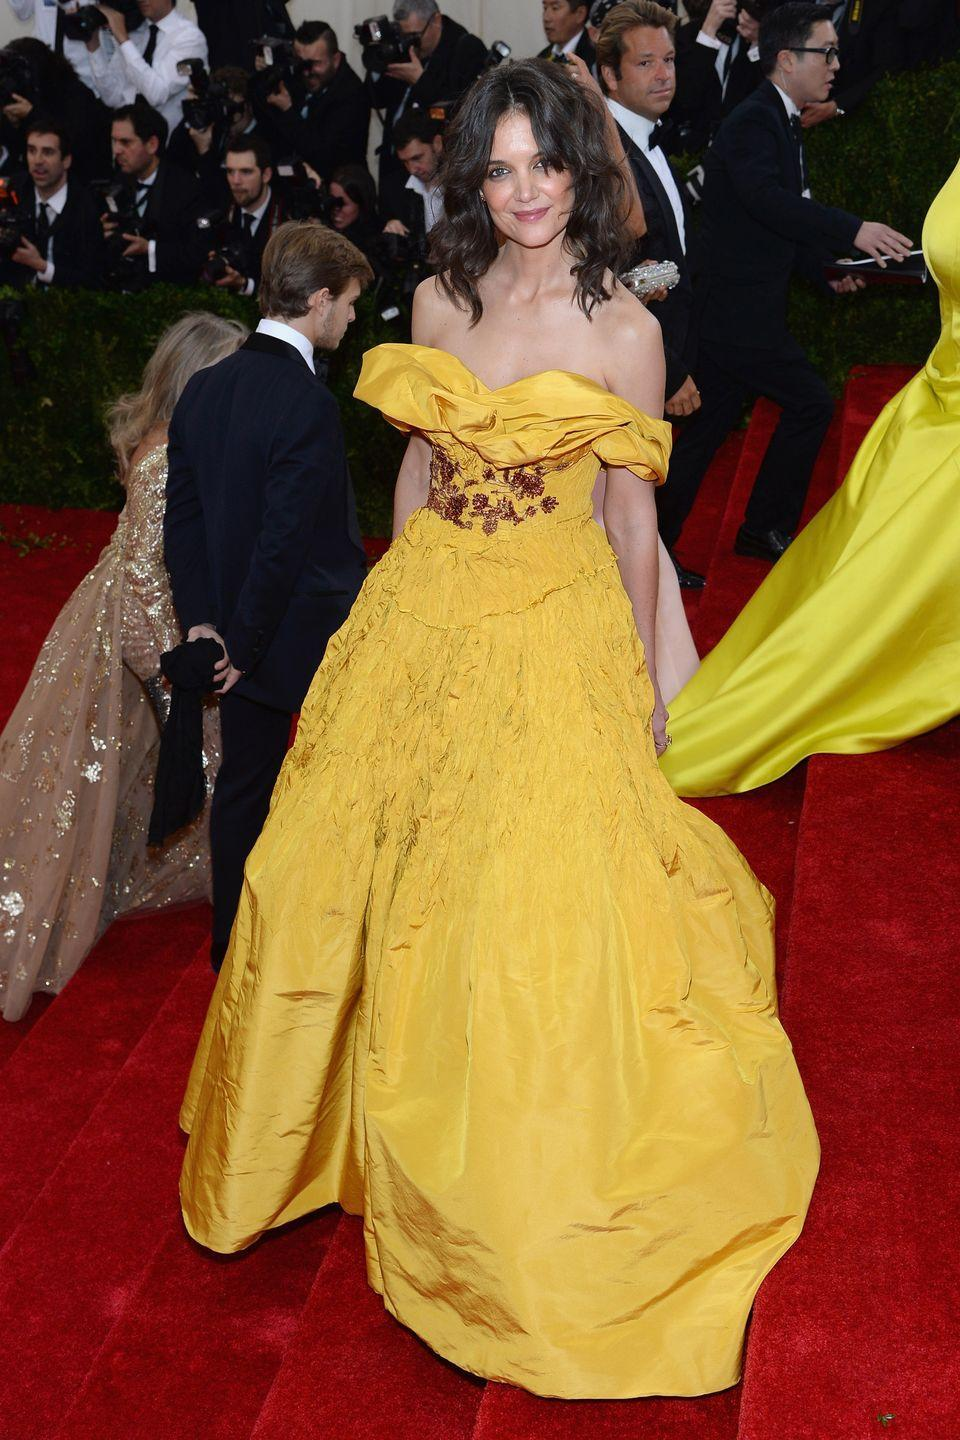 <p>Katie Holmes' 2014 Met Gala gown looks like it was taken straight from <em>Beauty and the Beast</em>.</p>